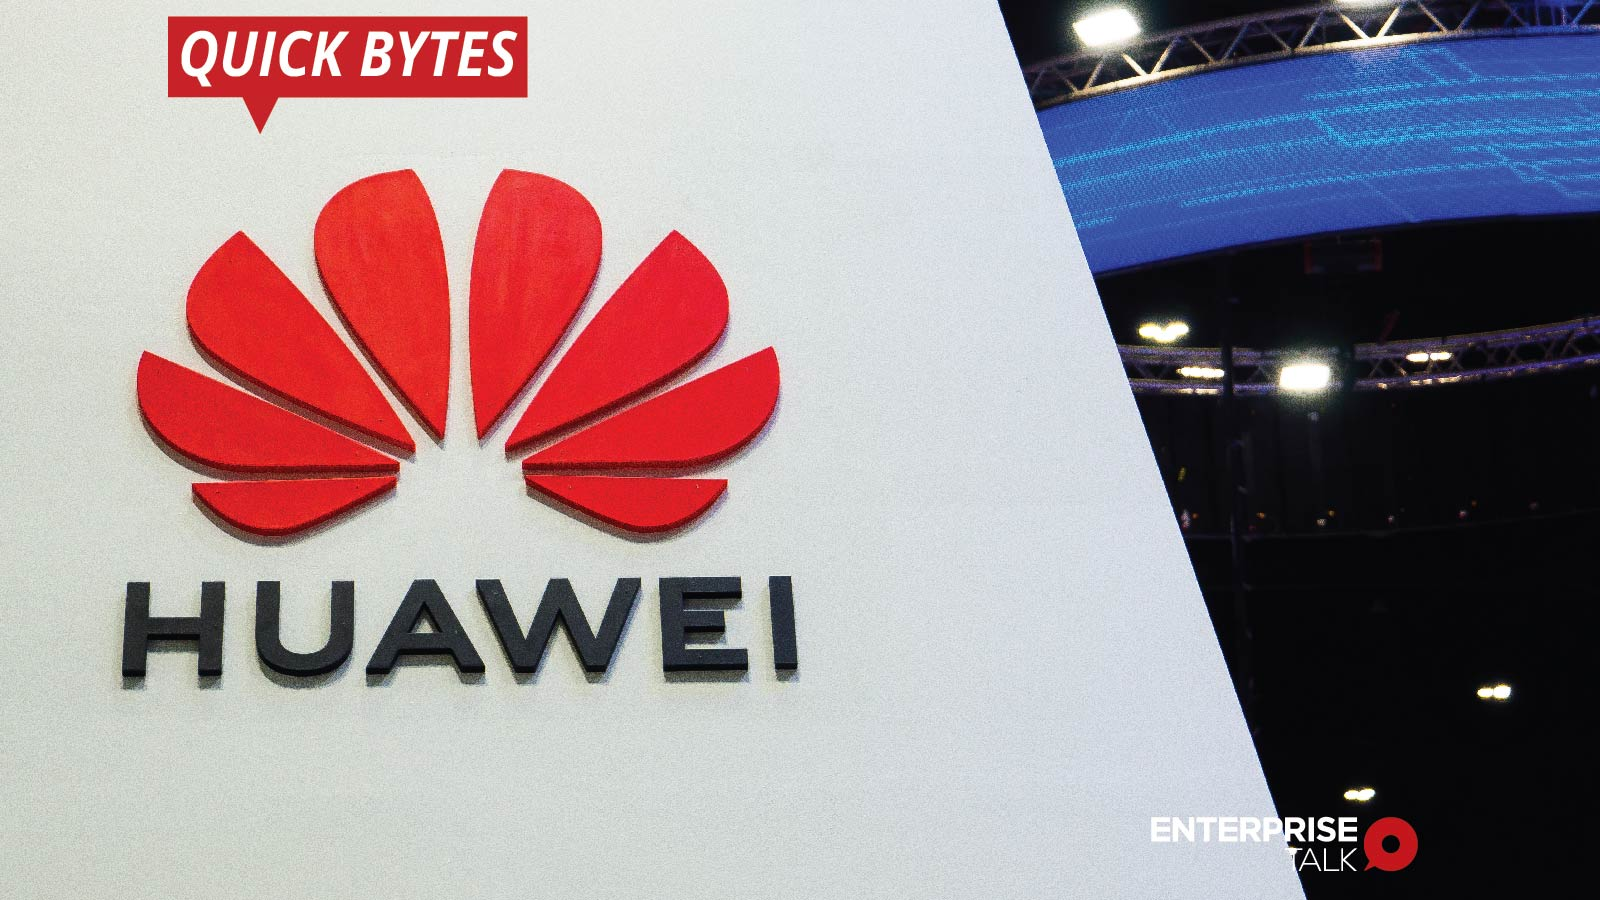 Britains Telcom Companies Face Fines for Using Suppliers Like Huawei